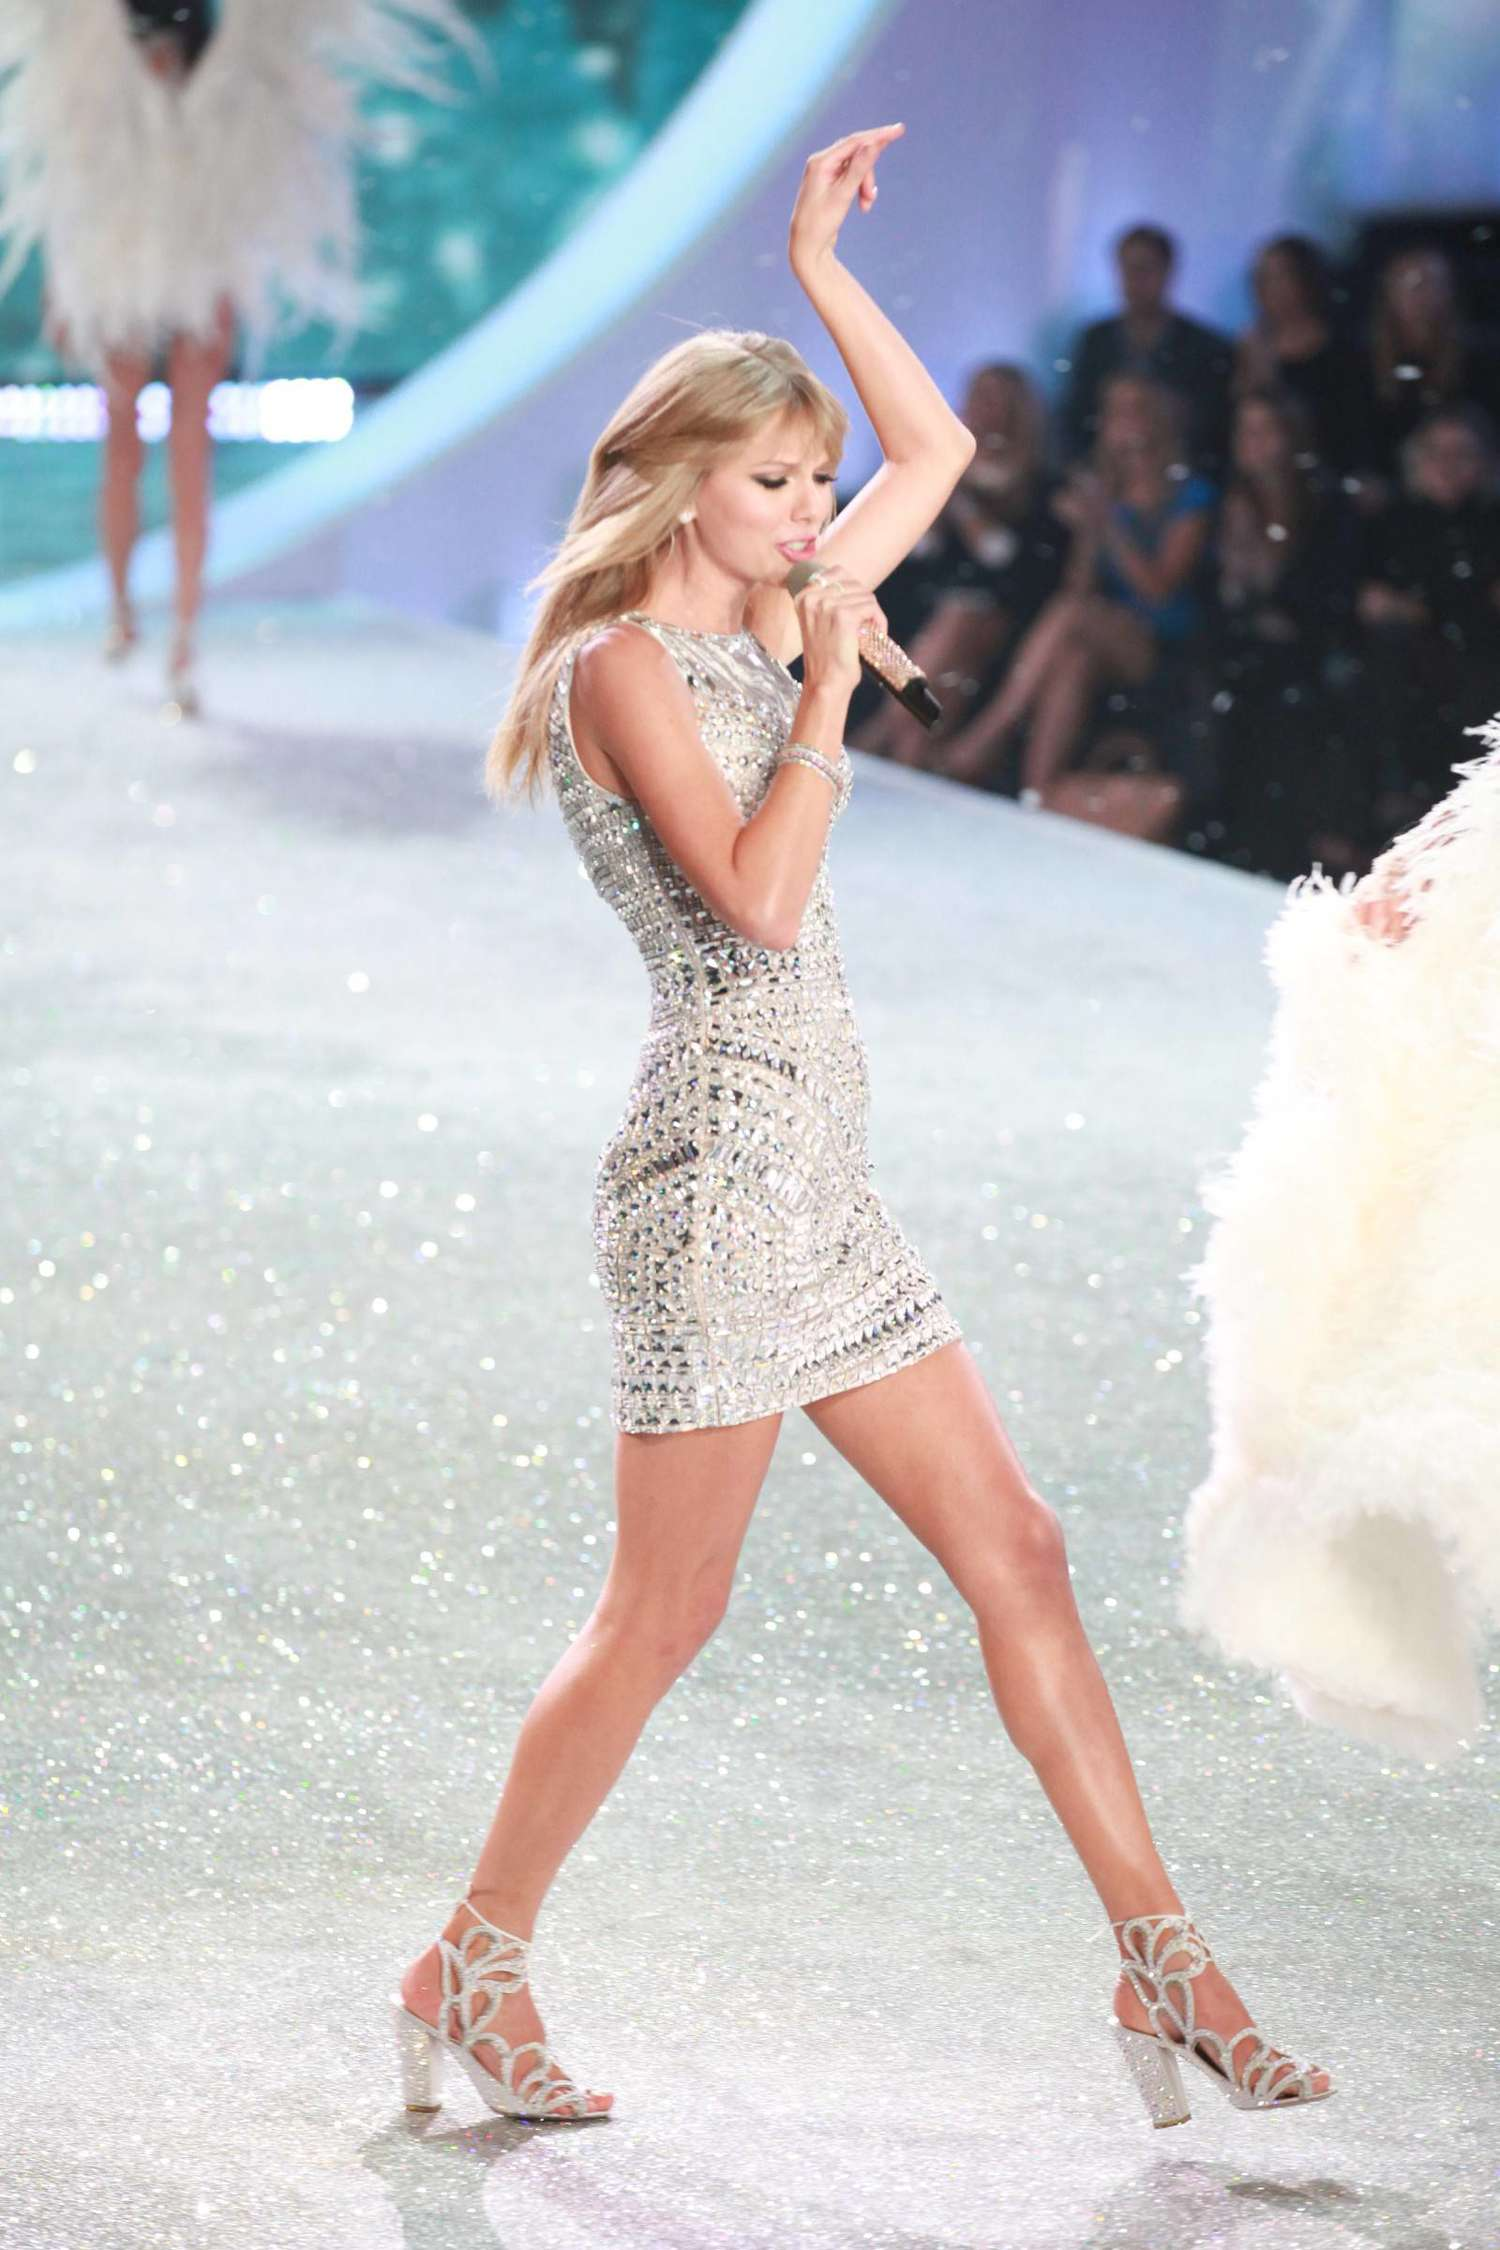 Taylor Swift 2013 Vs Fashion Show 19 Gotceleb